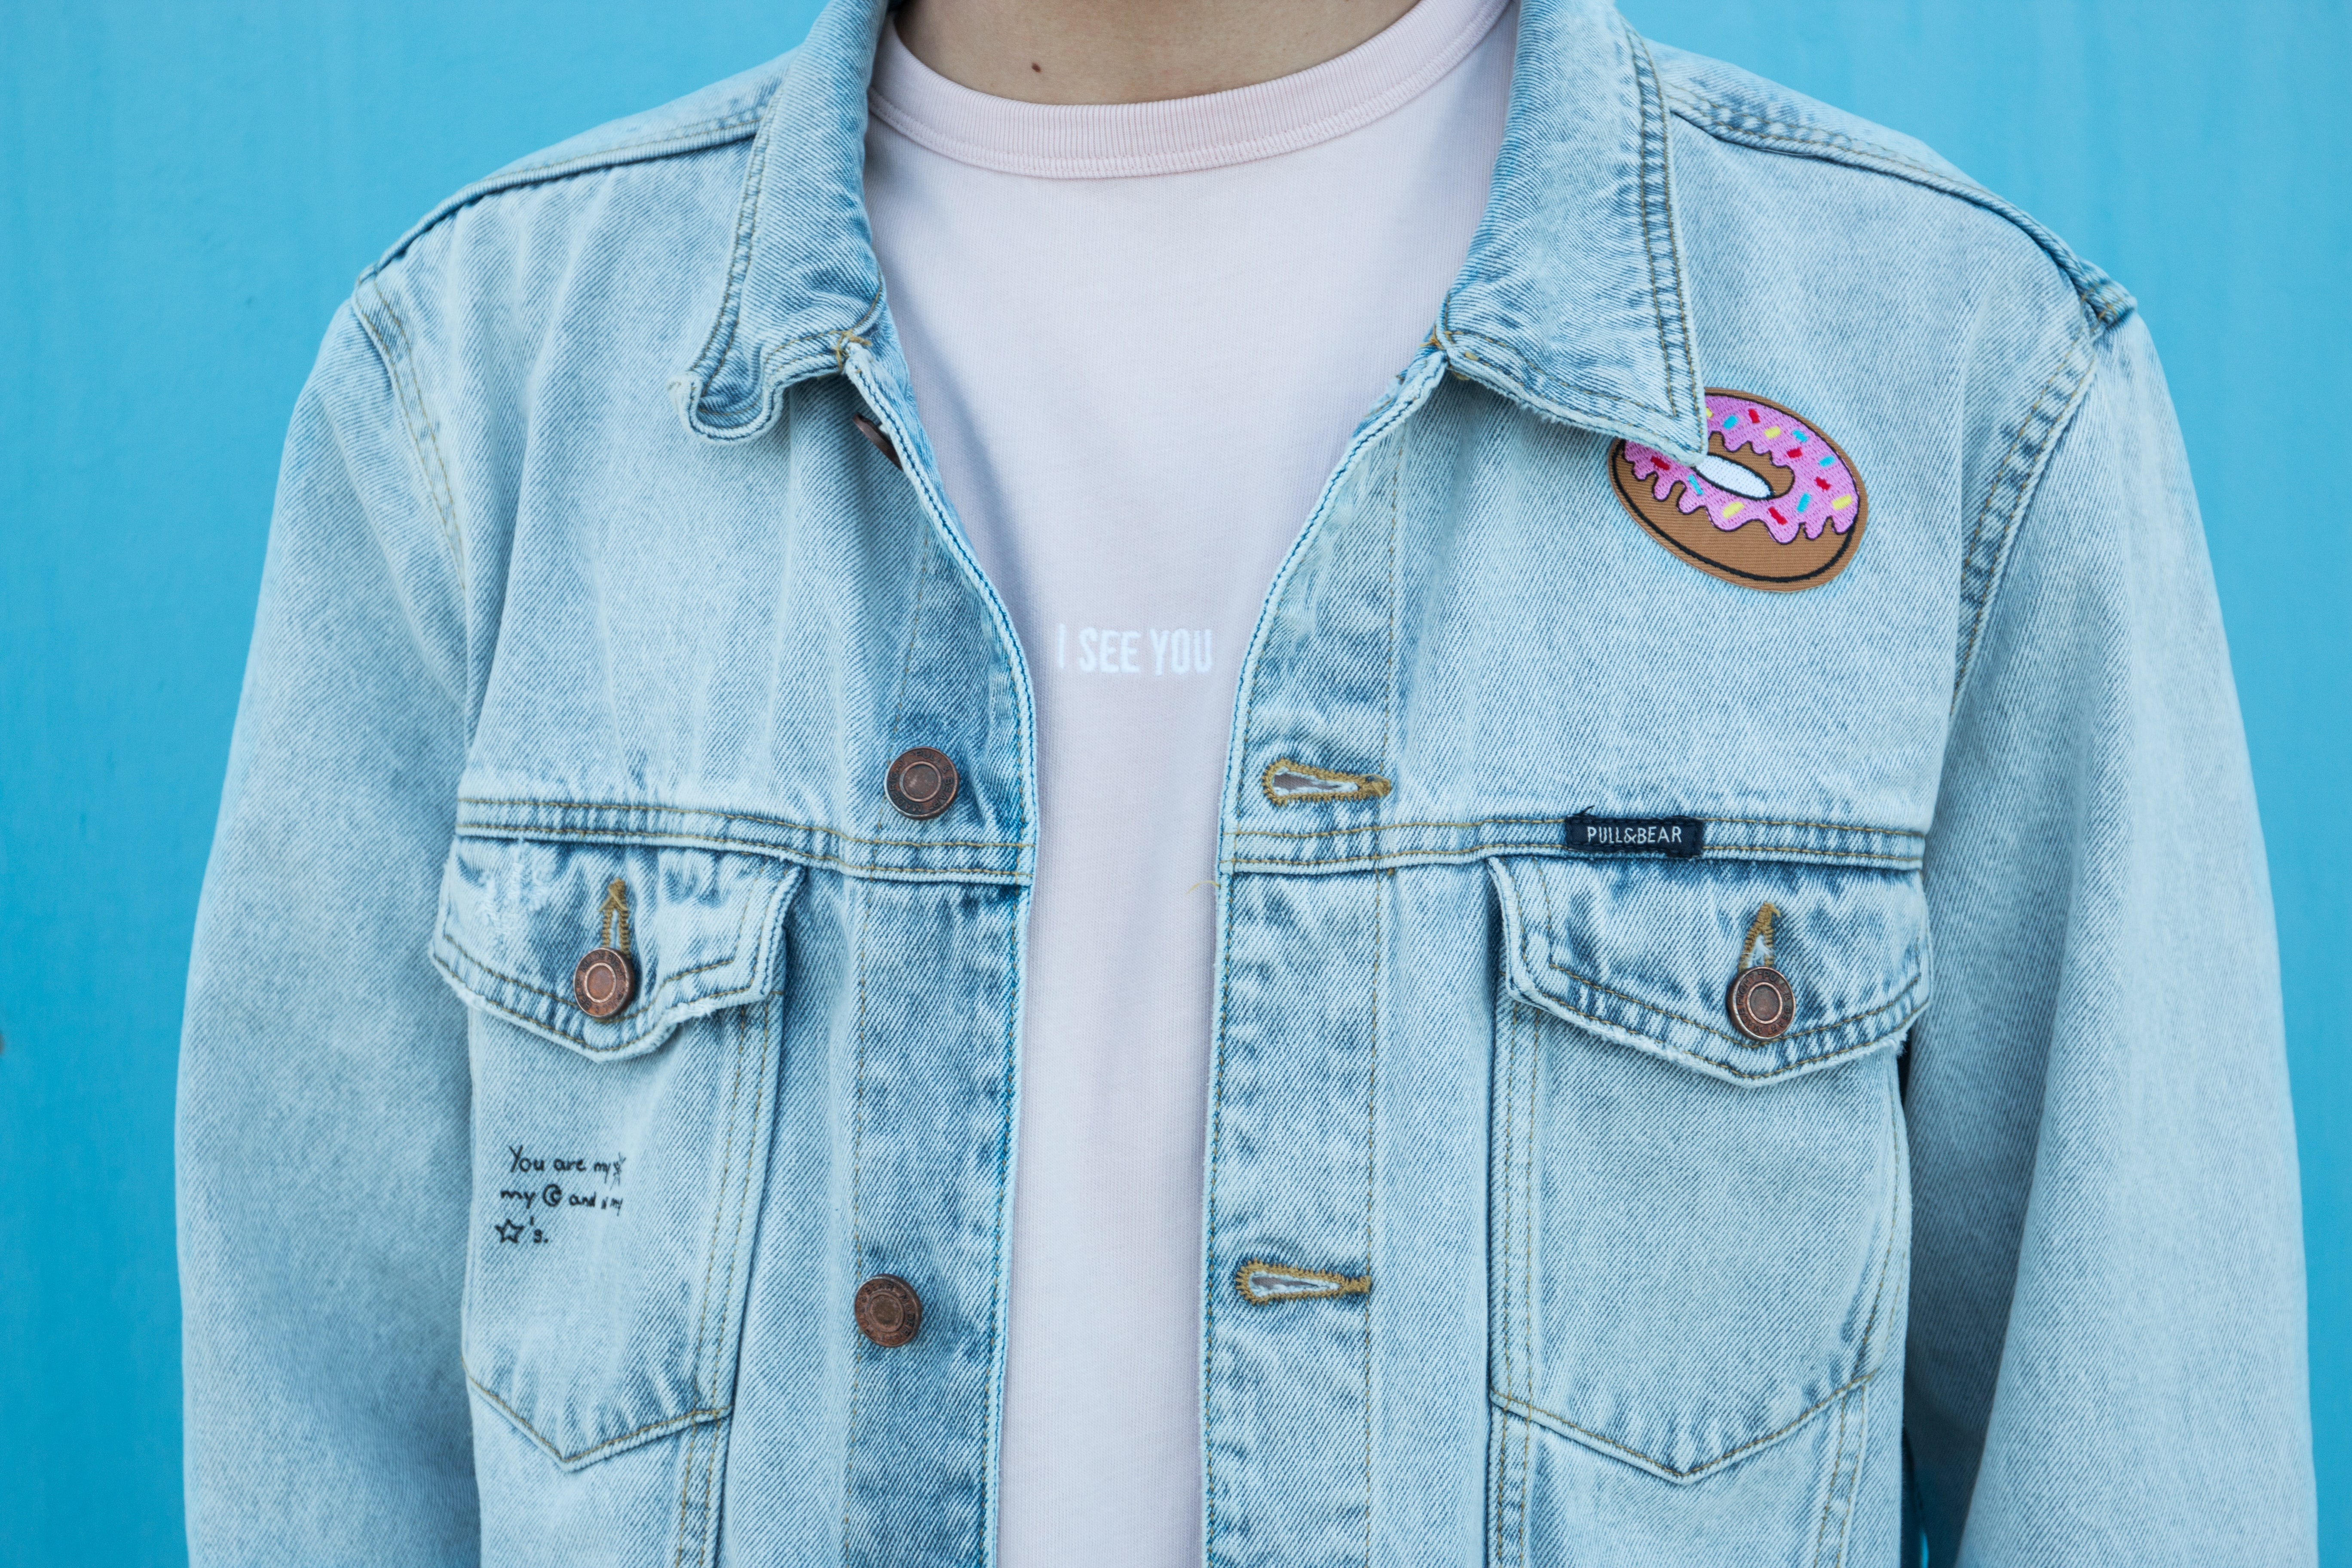 close shot of person denim top